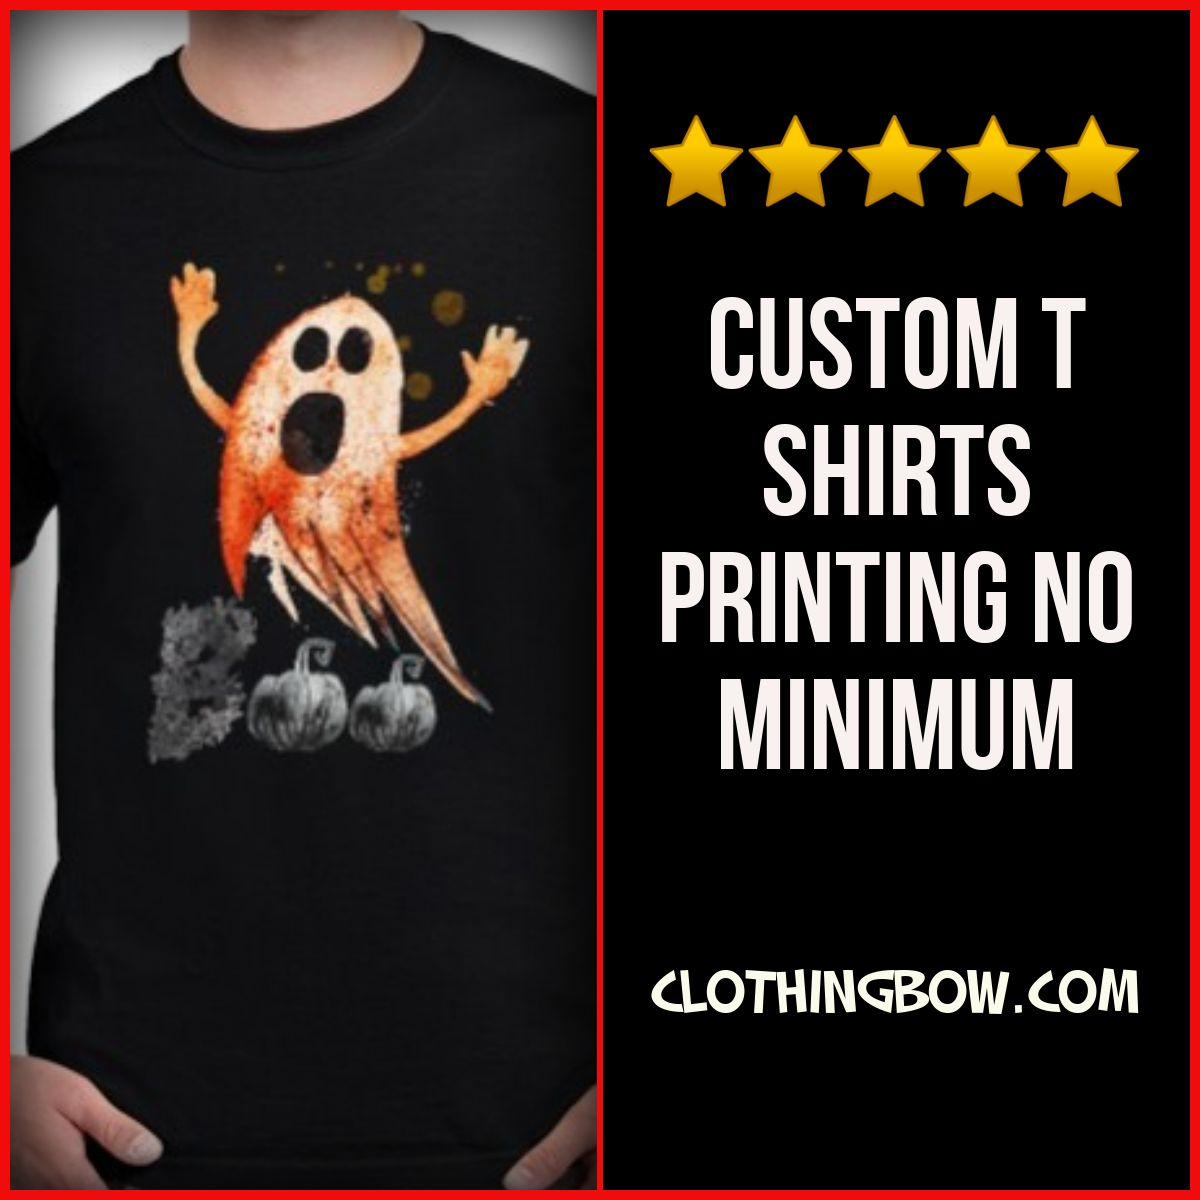 2fdb9dd4c ... cahoots with, as inexperienced, destroying the country, which the  nation is normally worse-off than it was when custom t shirts online they  were ruling.